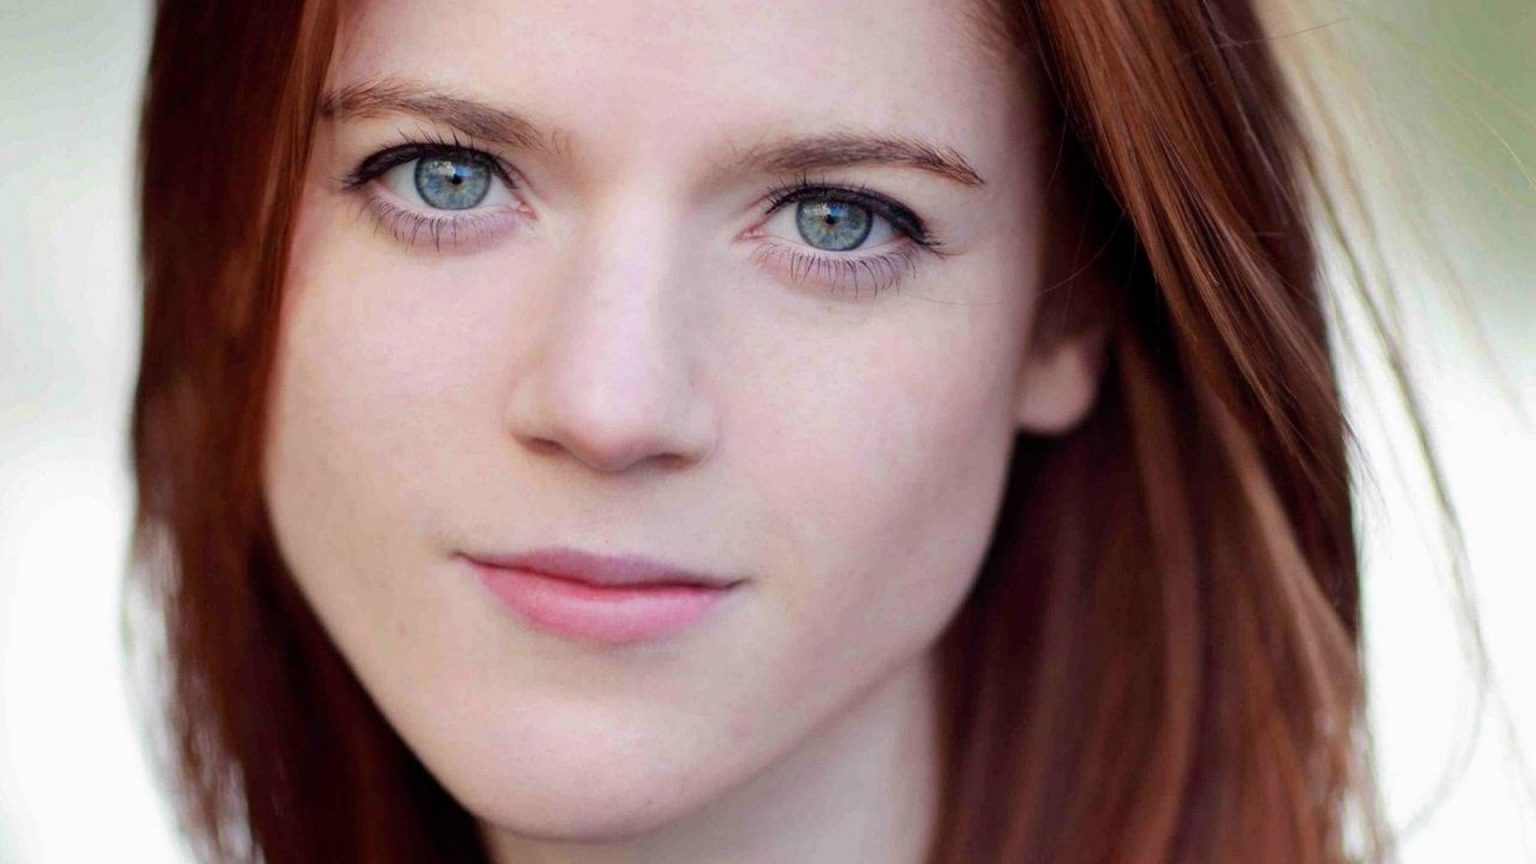 Rose Leslie - All Body Measurements Including Boobs, Waist, Hips and More - Measurements Info